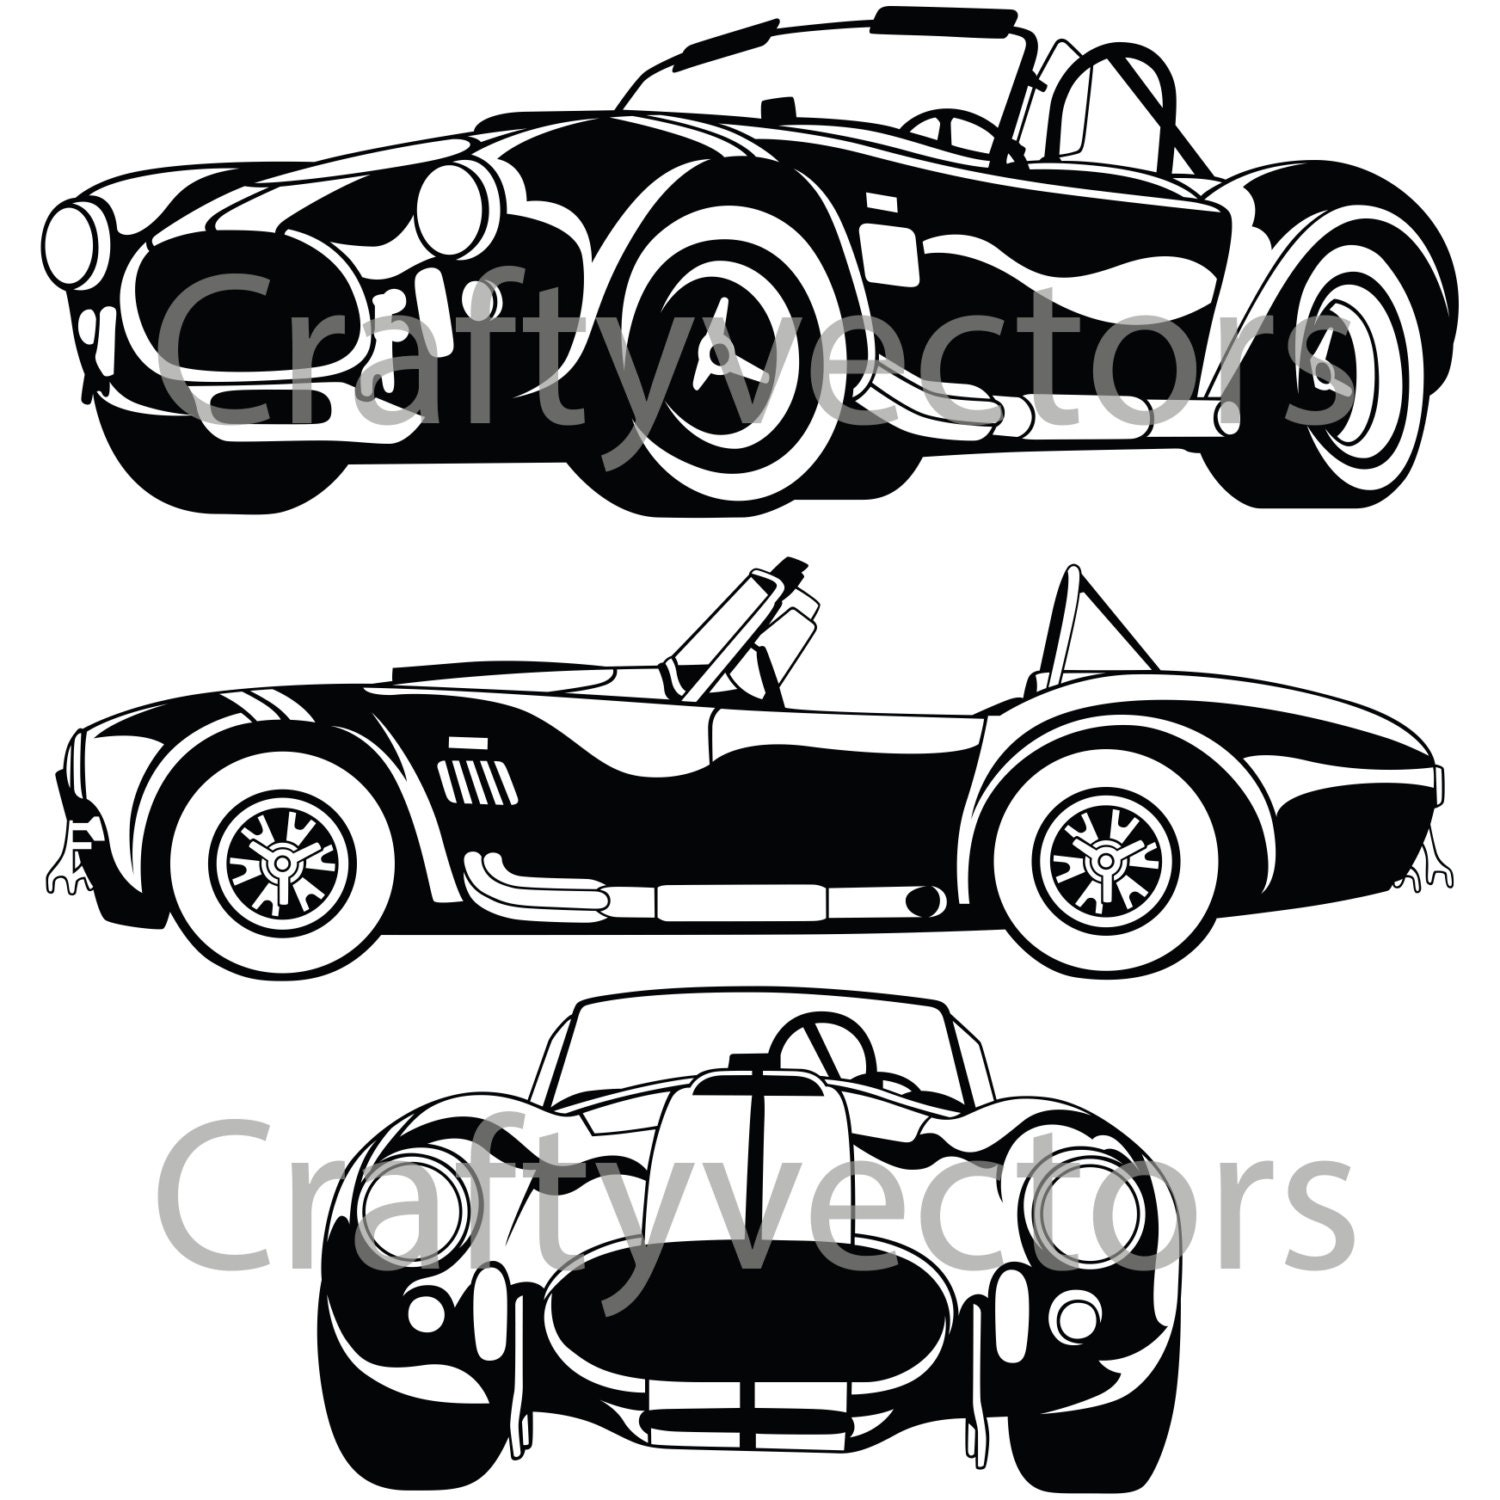 shelby ac cobra 67 vector file etsy 1956 Ford Shelby GT350 50